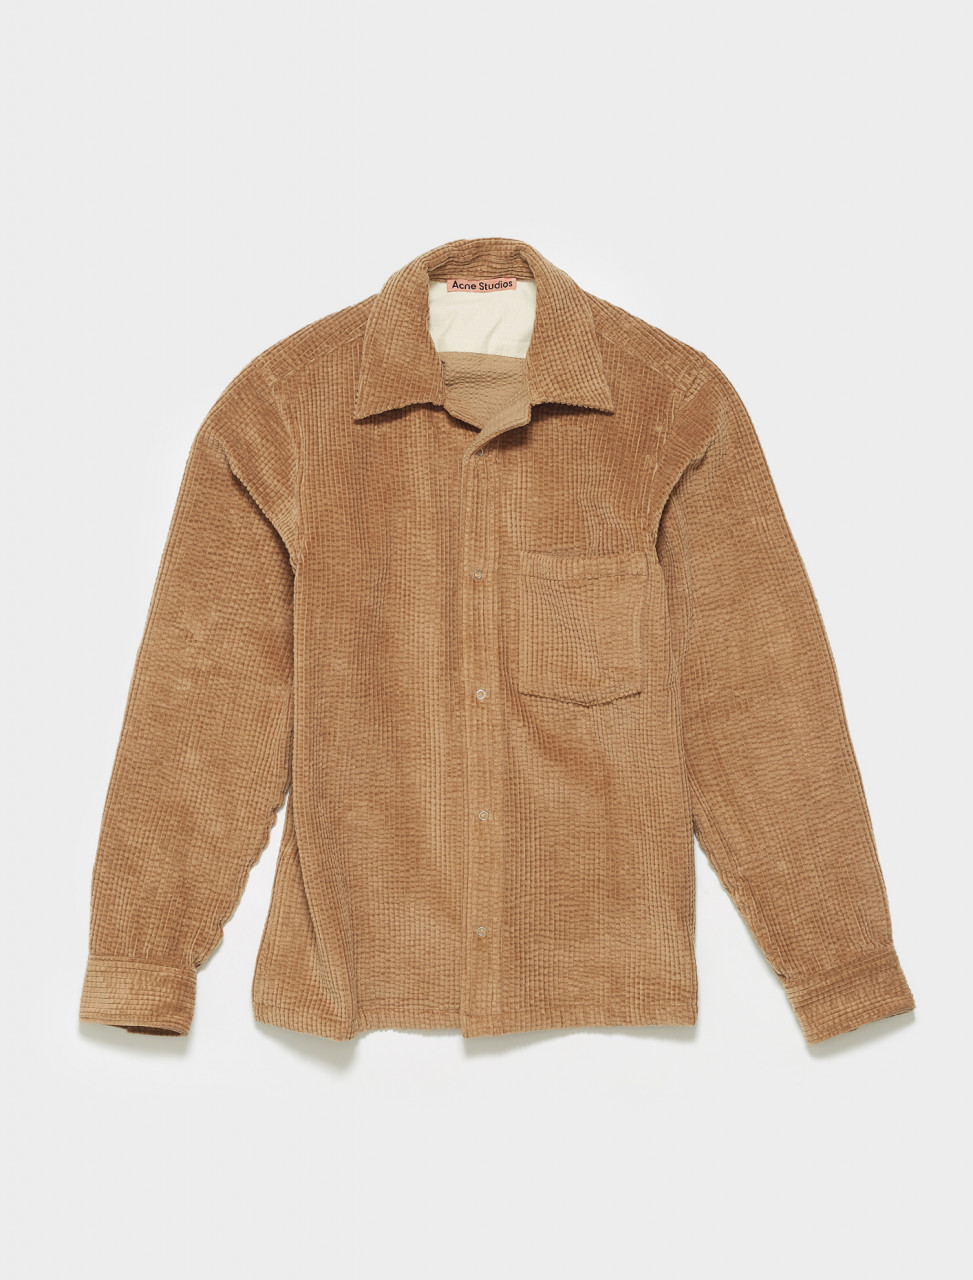 BB0307-640 ACNE STUDIOS DENVER CORD SHIRT IN CAMEL BROWN